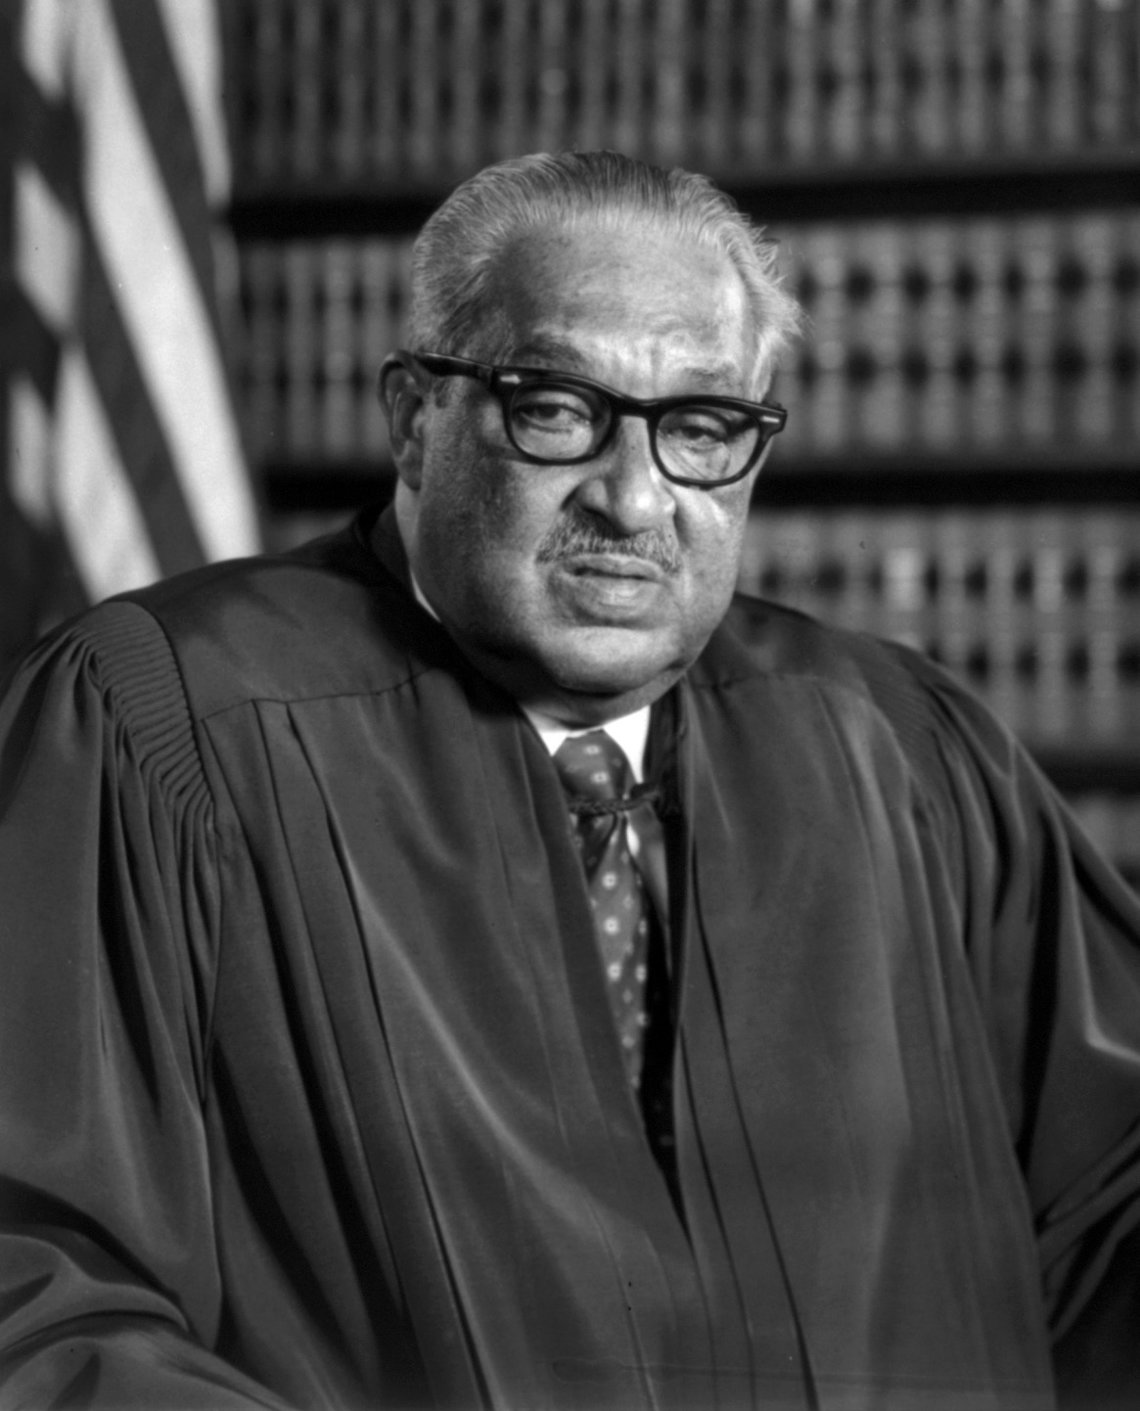 Supreme Court Justice Thurgood Marshall in 1976.